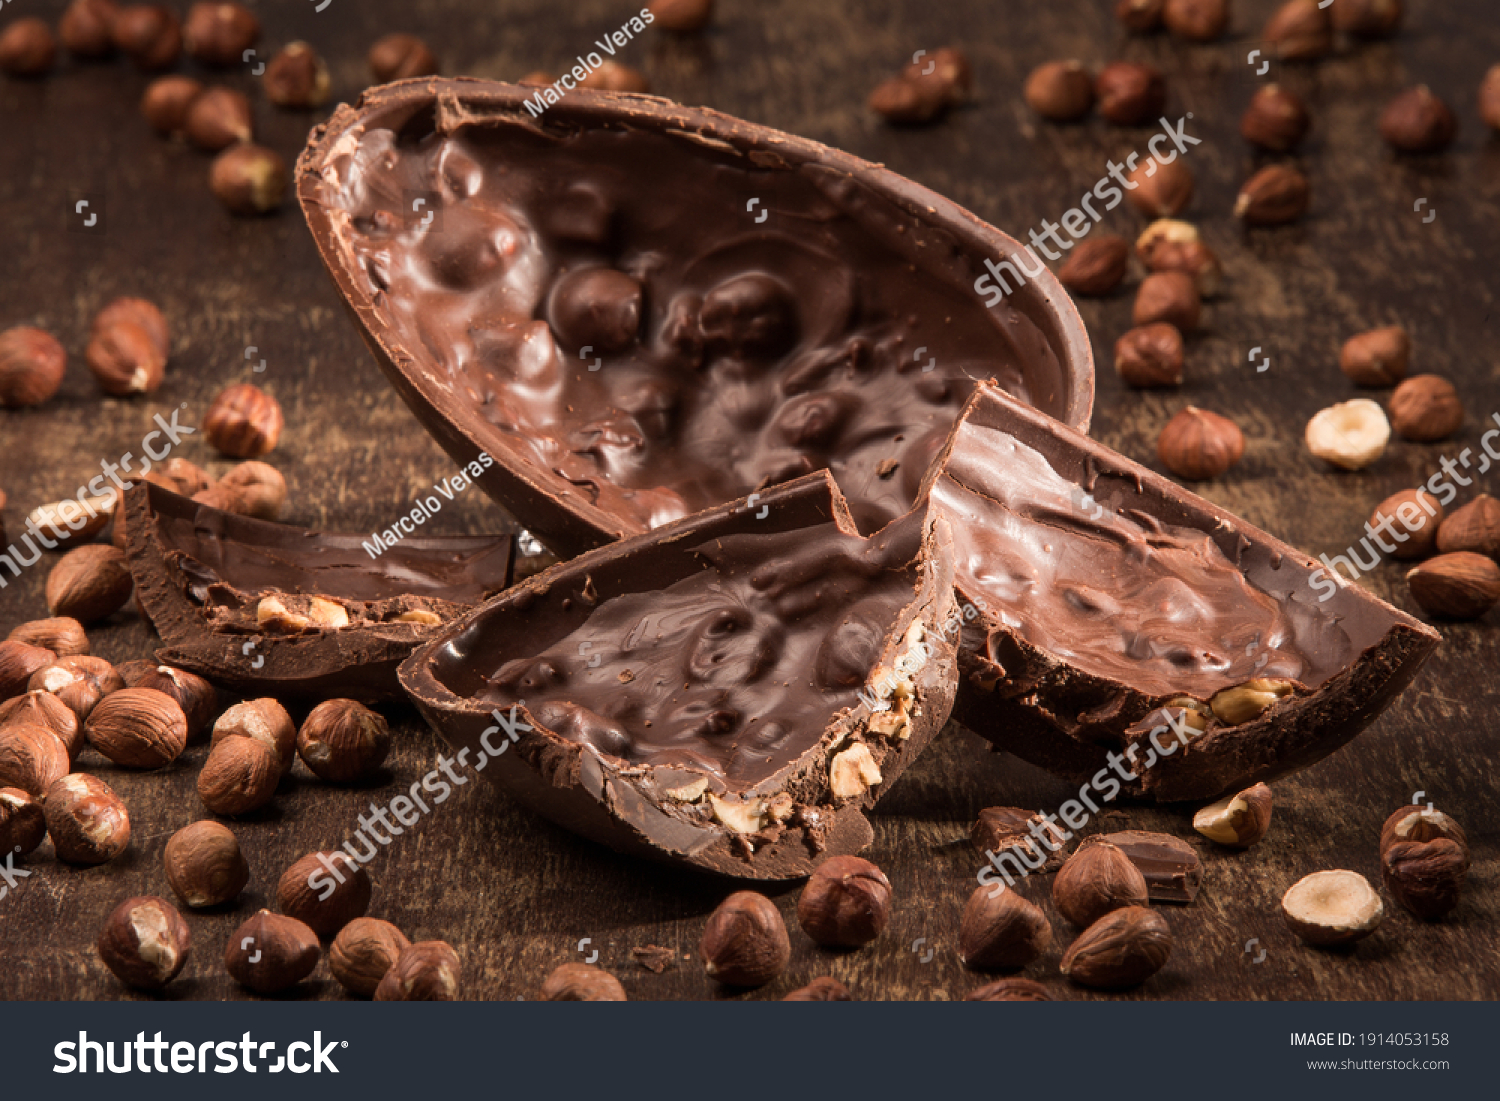 Stuffed chocolate easter egg on a wood table with hazelnuts. #1914053158